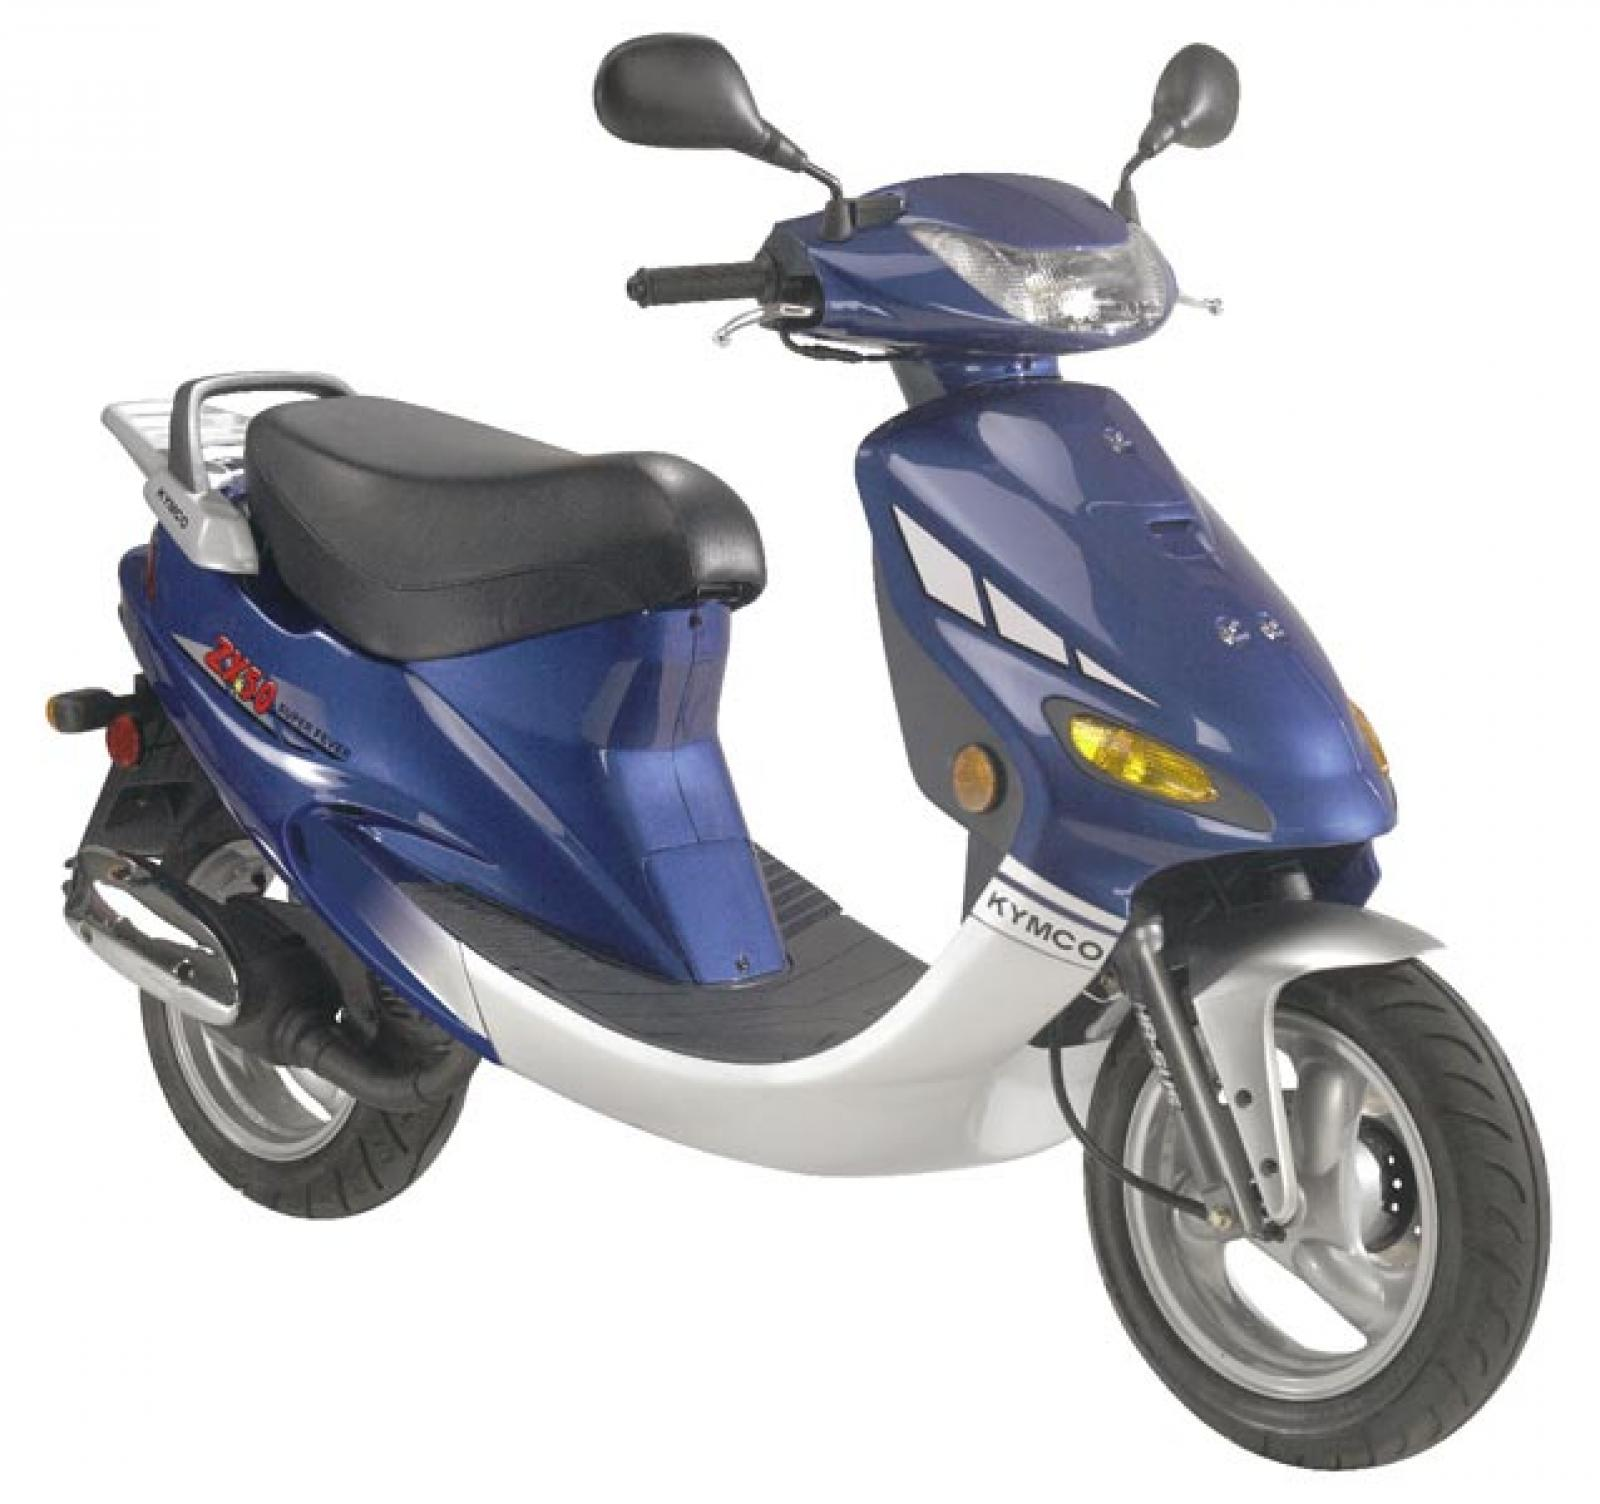 Kymco Yup 50 2004 images #101490